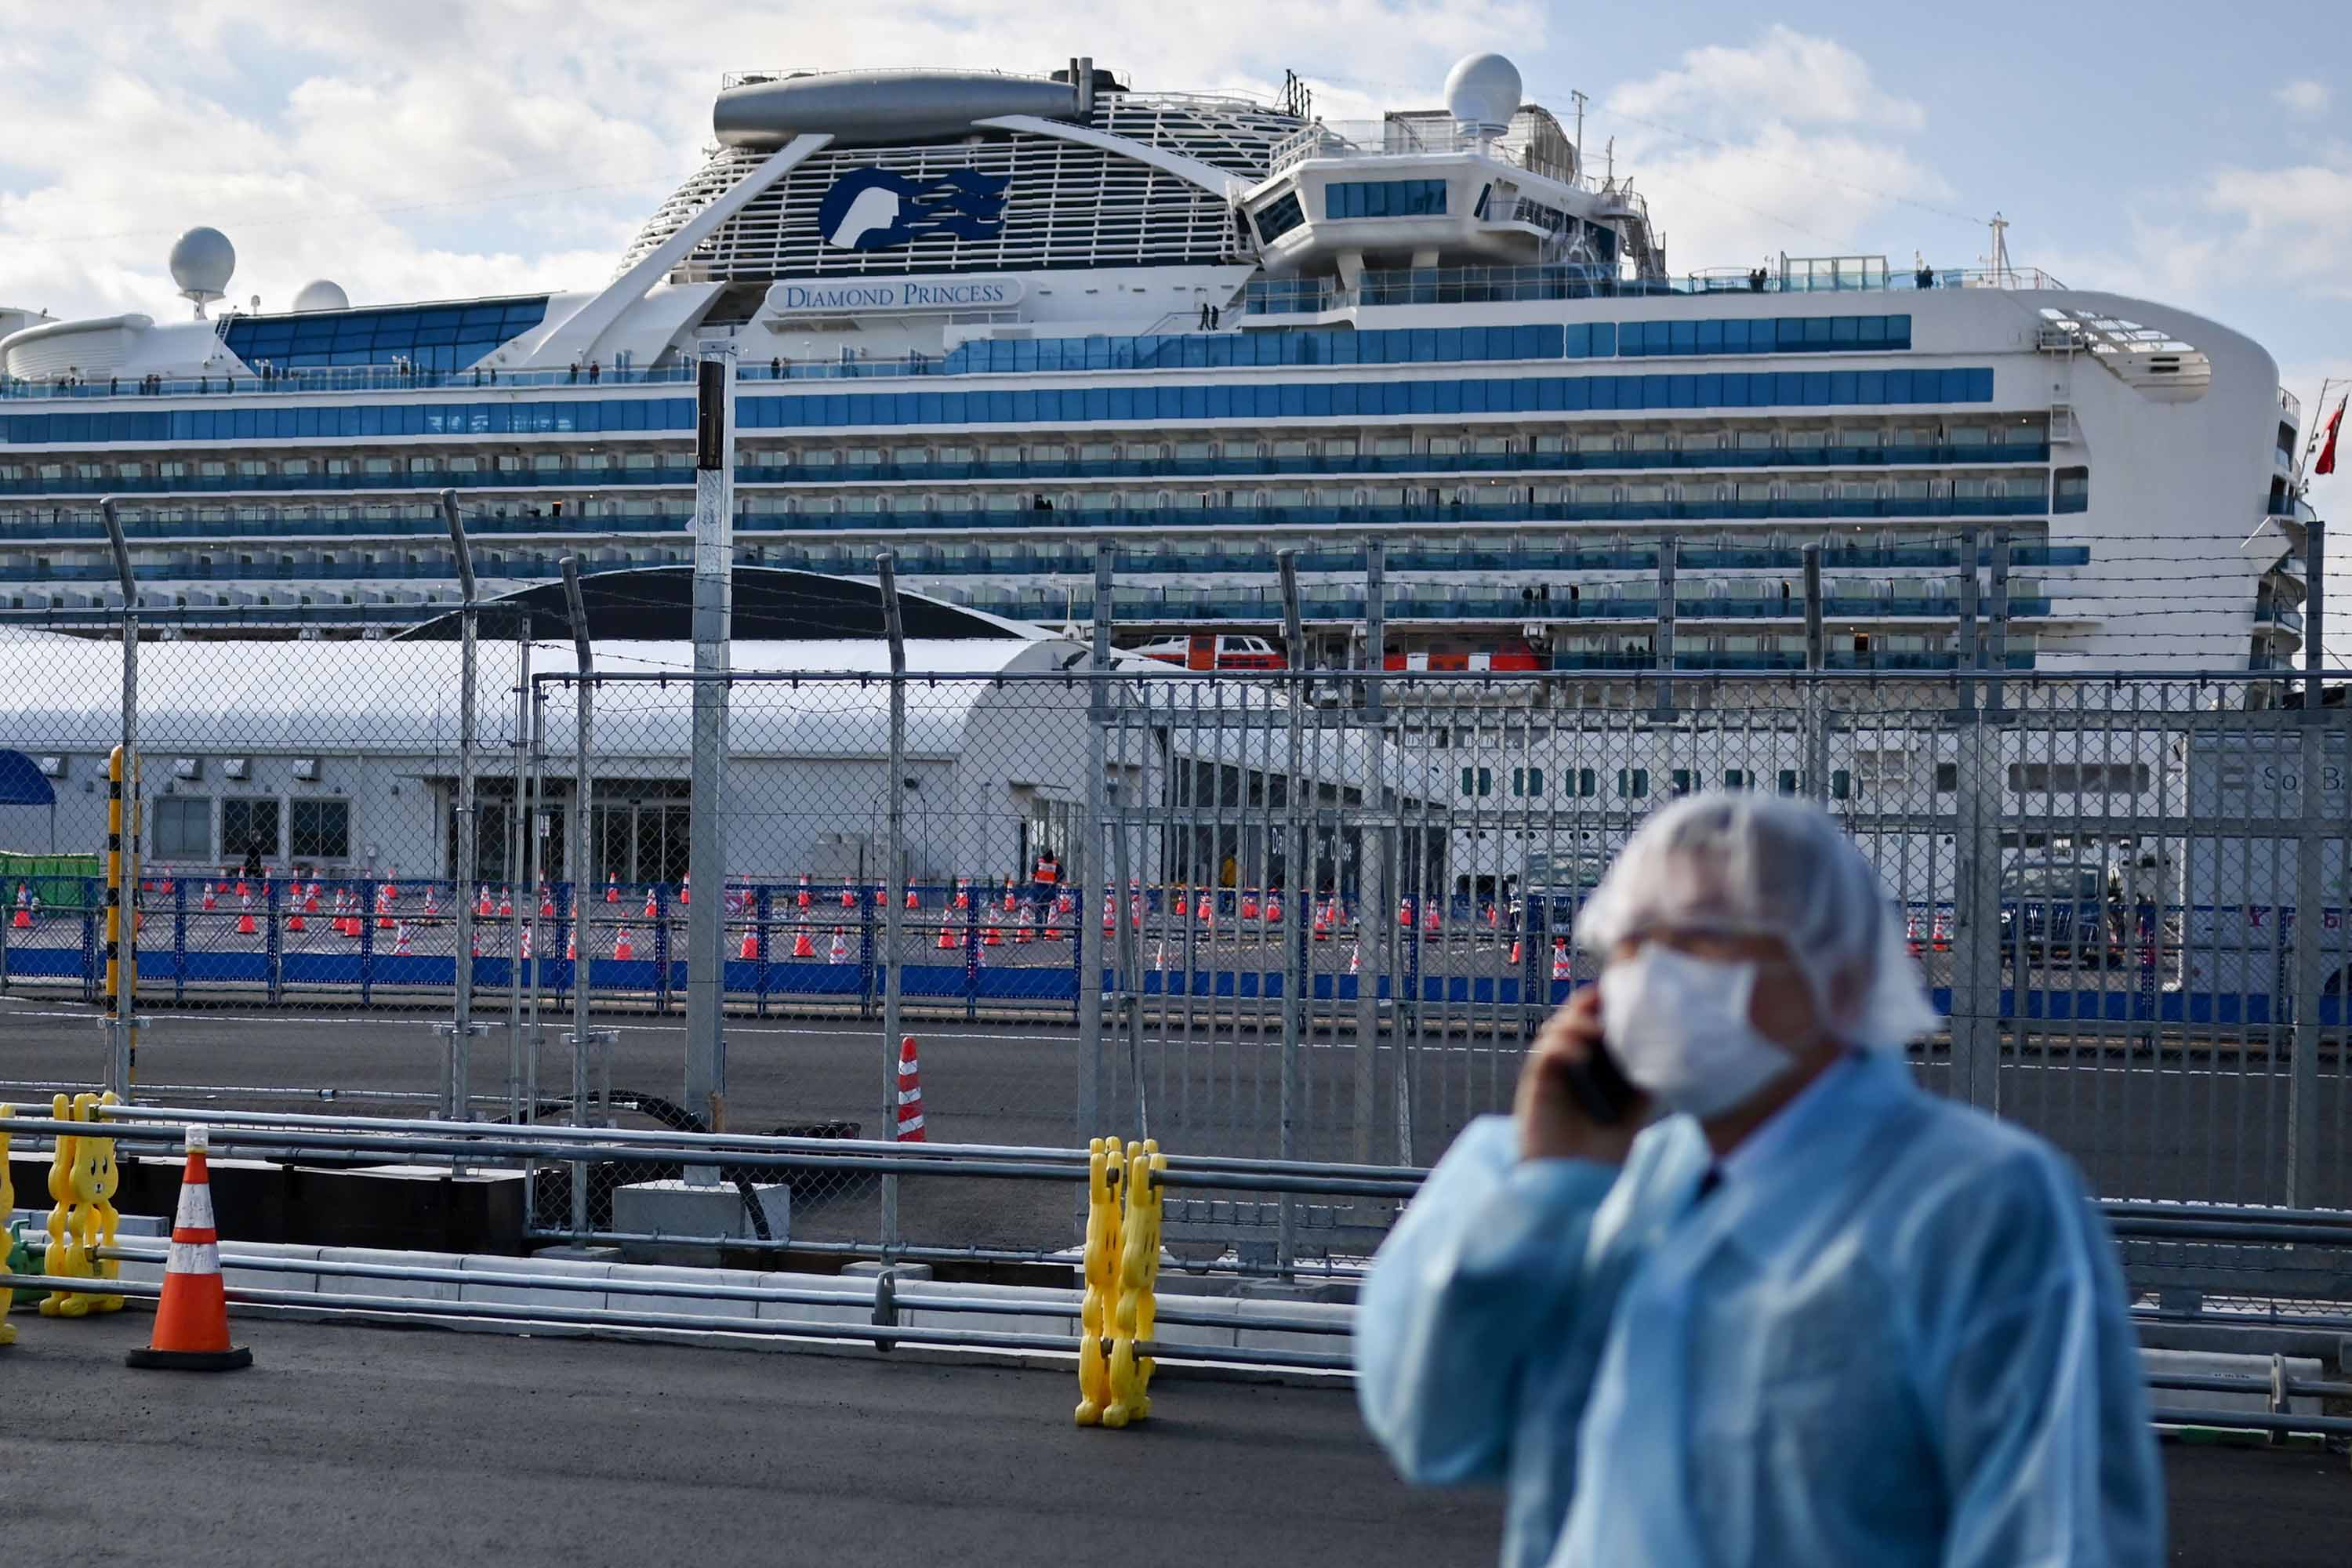 A man in protective gear speaks on a phone near the quarantined Diamond Princess cruise ship in Yokohama, Japan on \Wednesday.